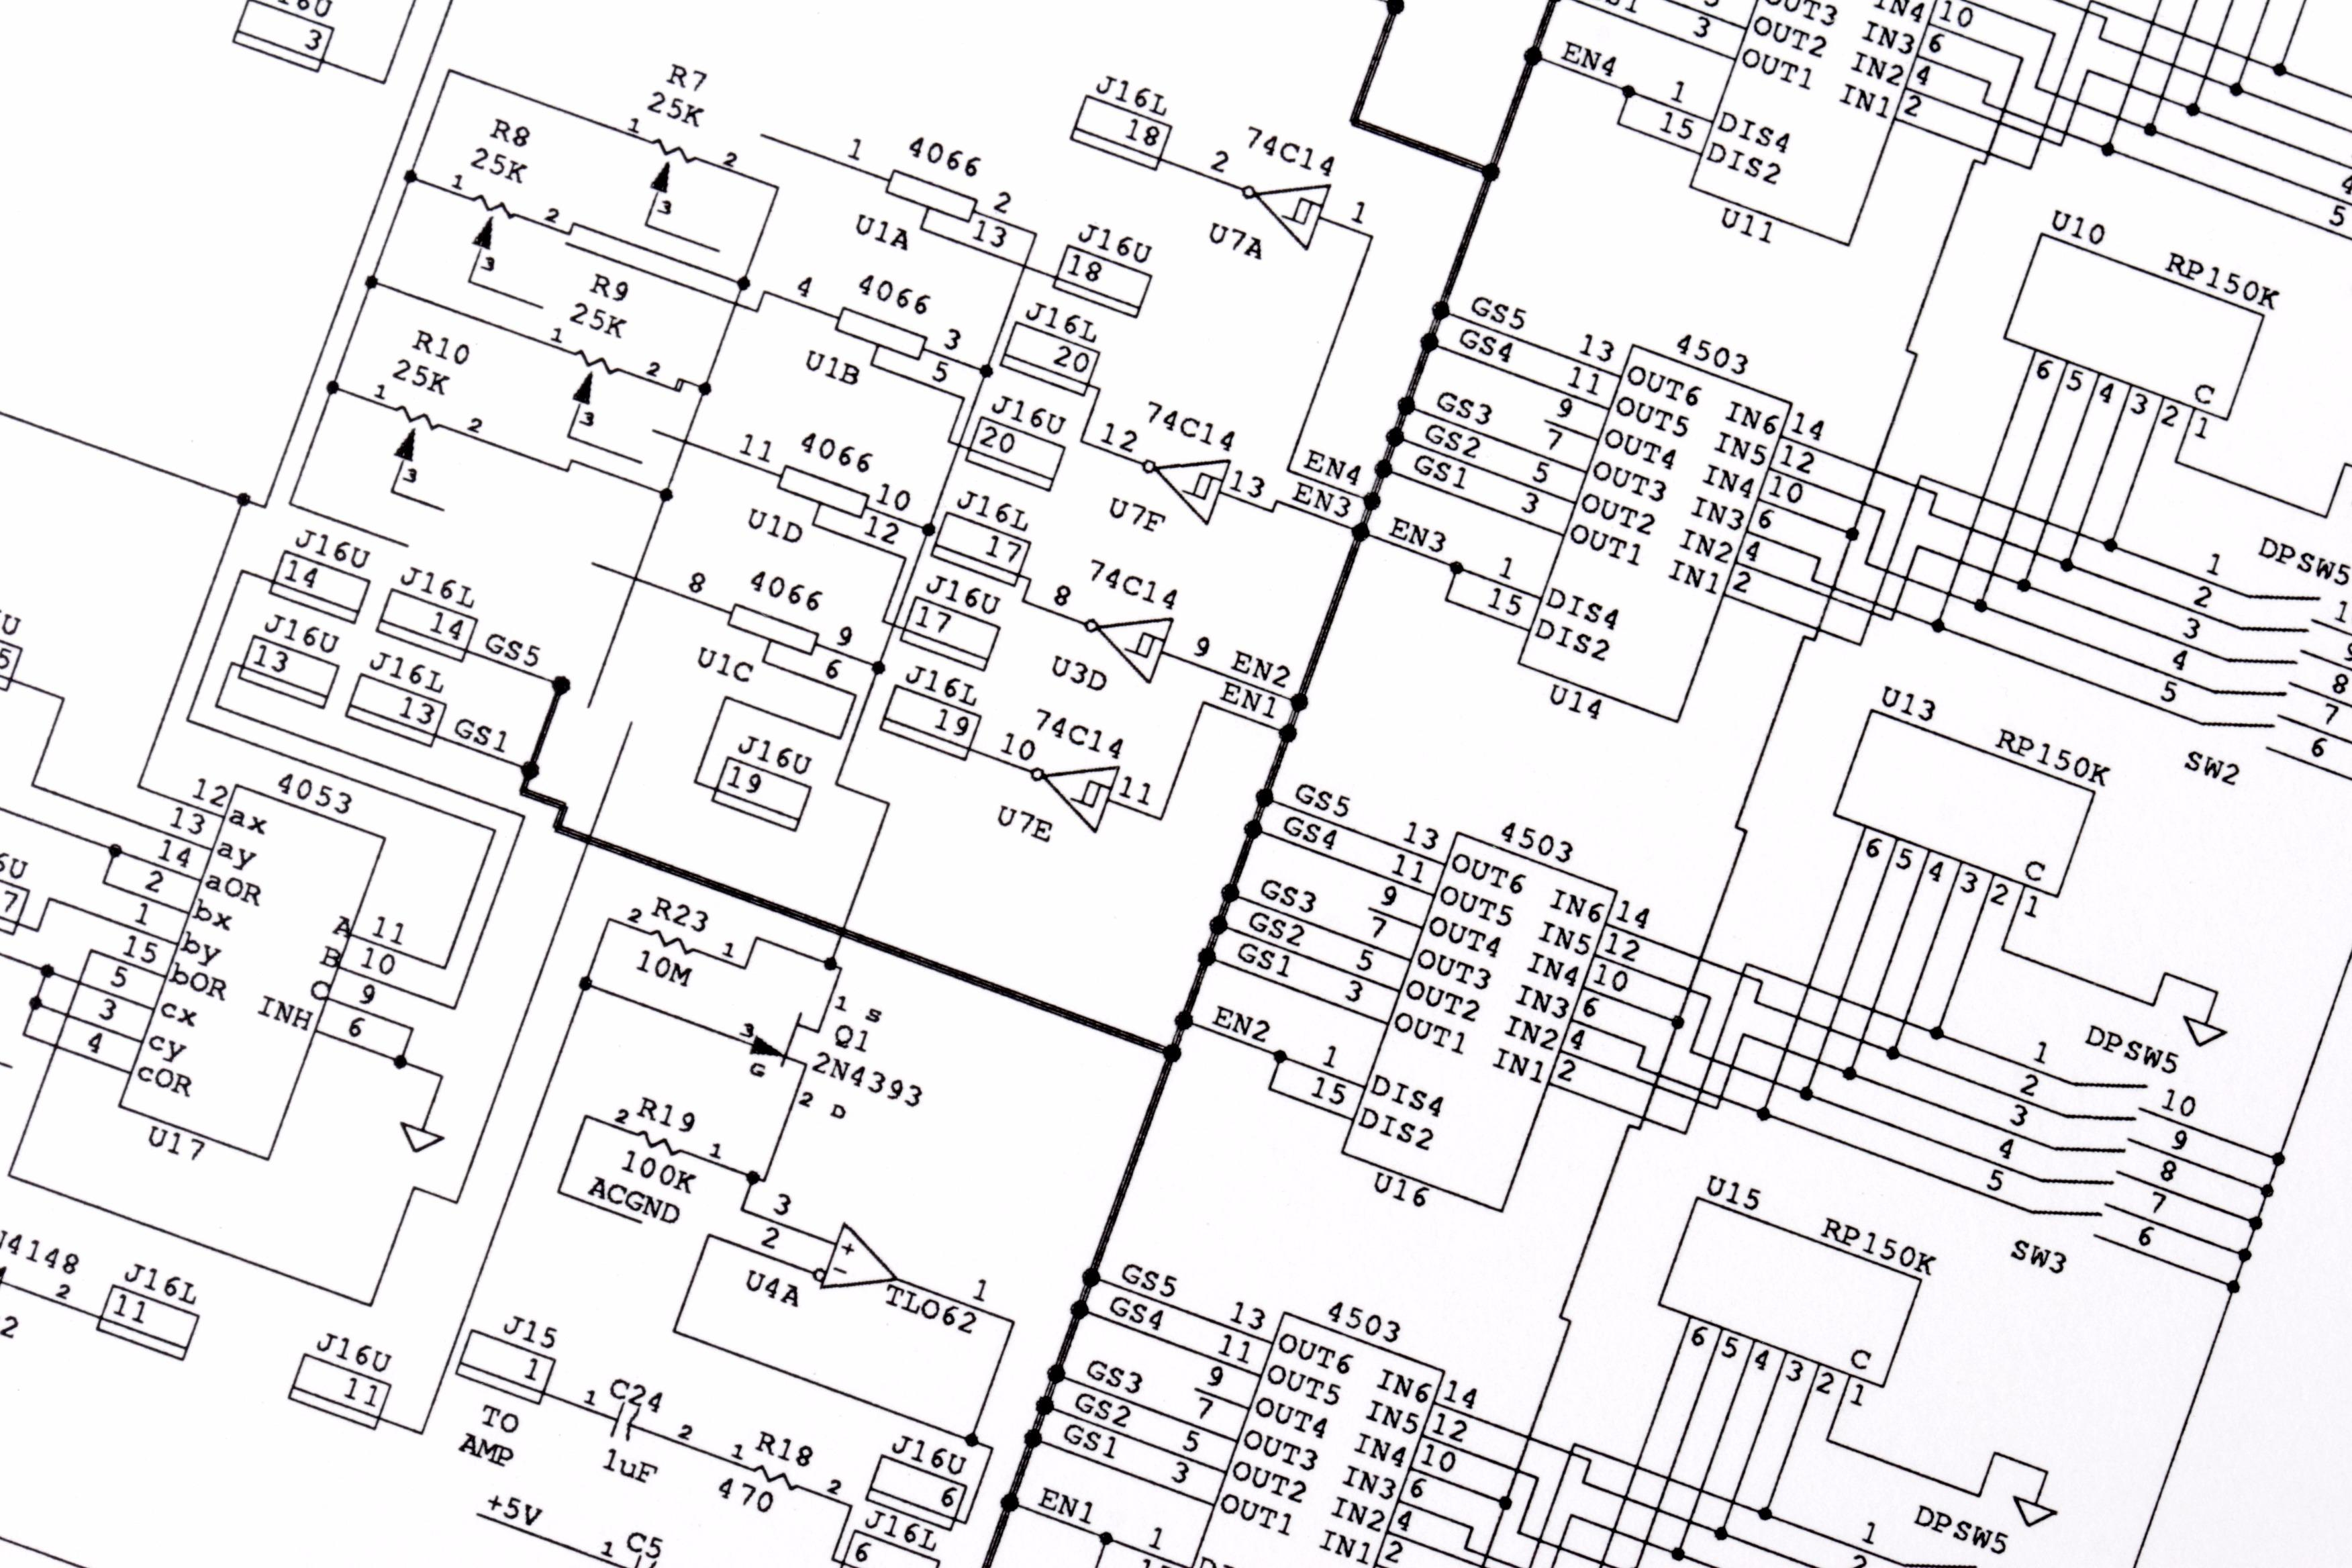 Mesa Engineering Schematics Cab Auto Electrical Wiring Diagram Kw Diagrams 2005 Related With